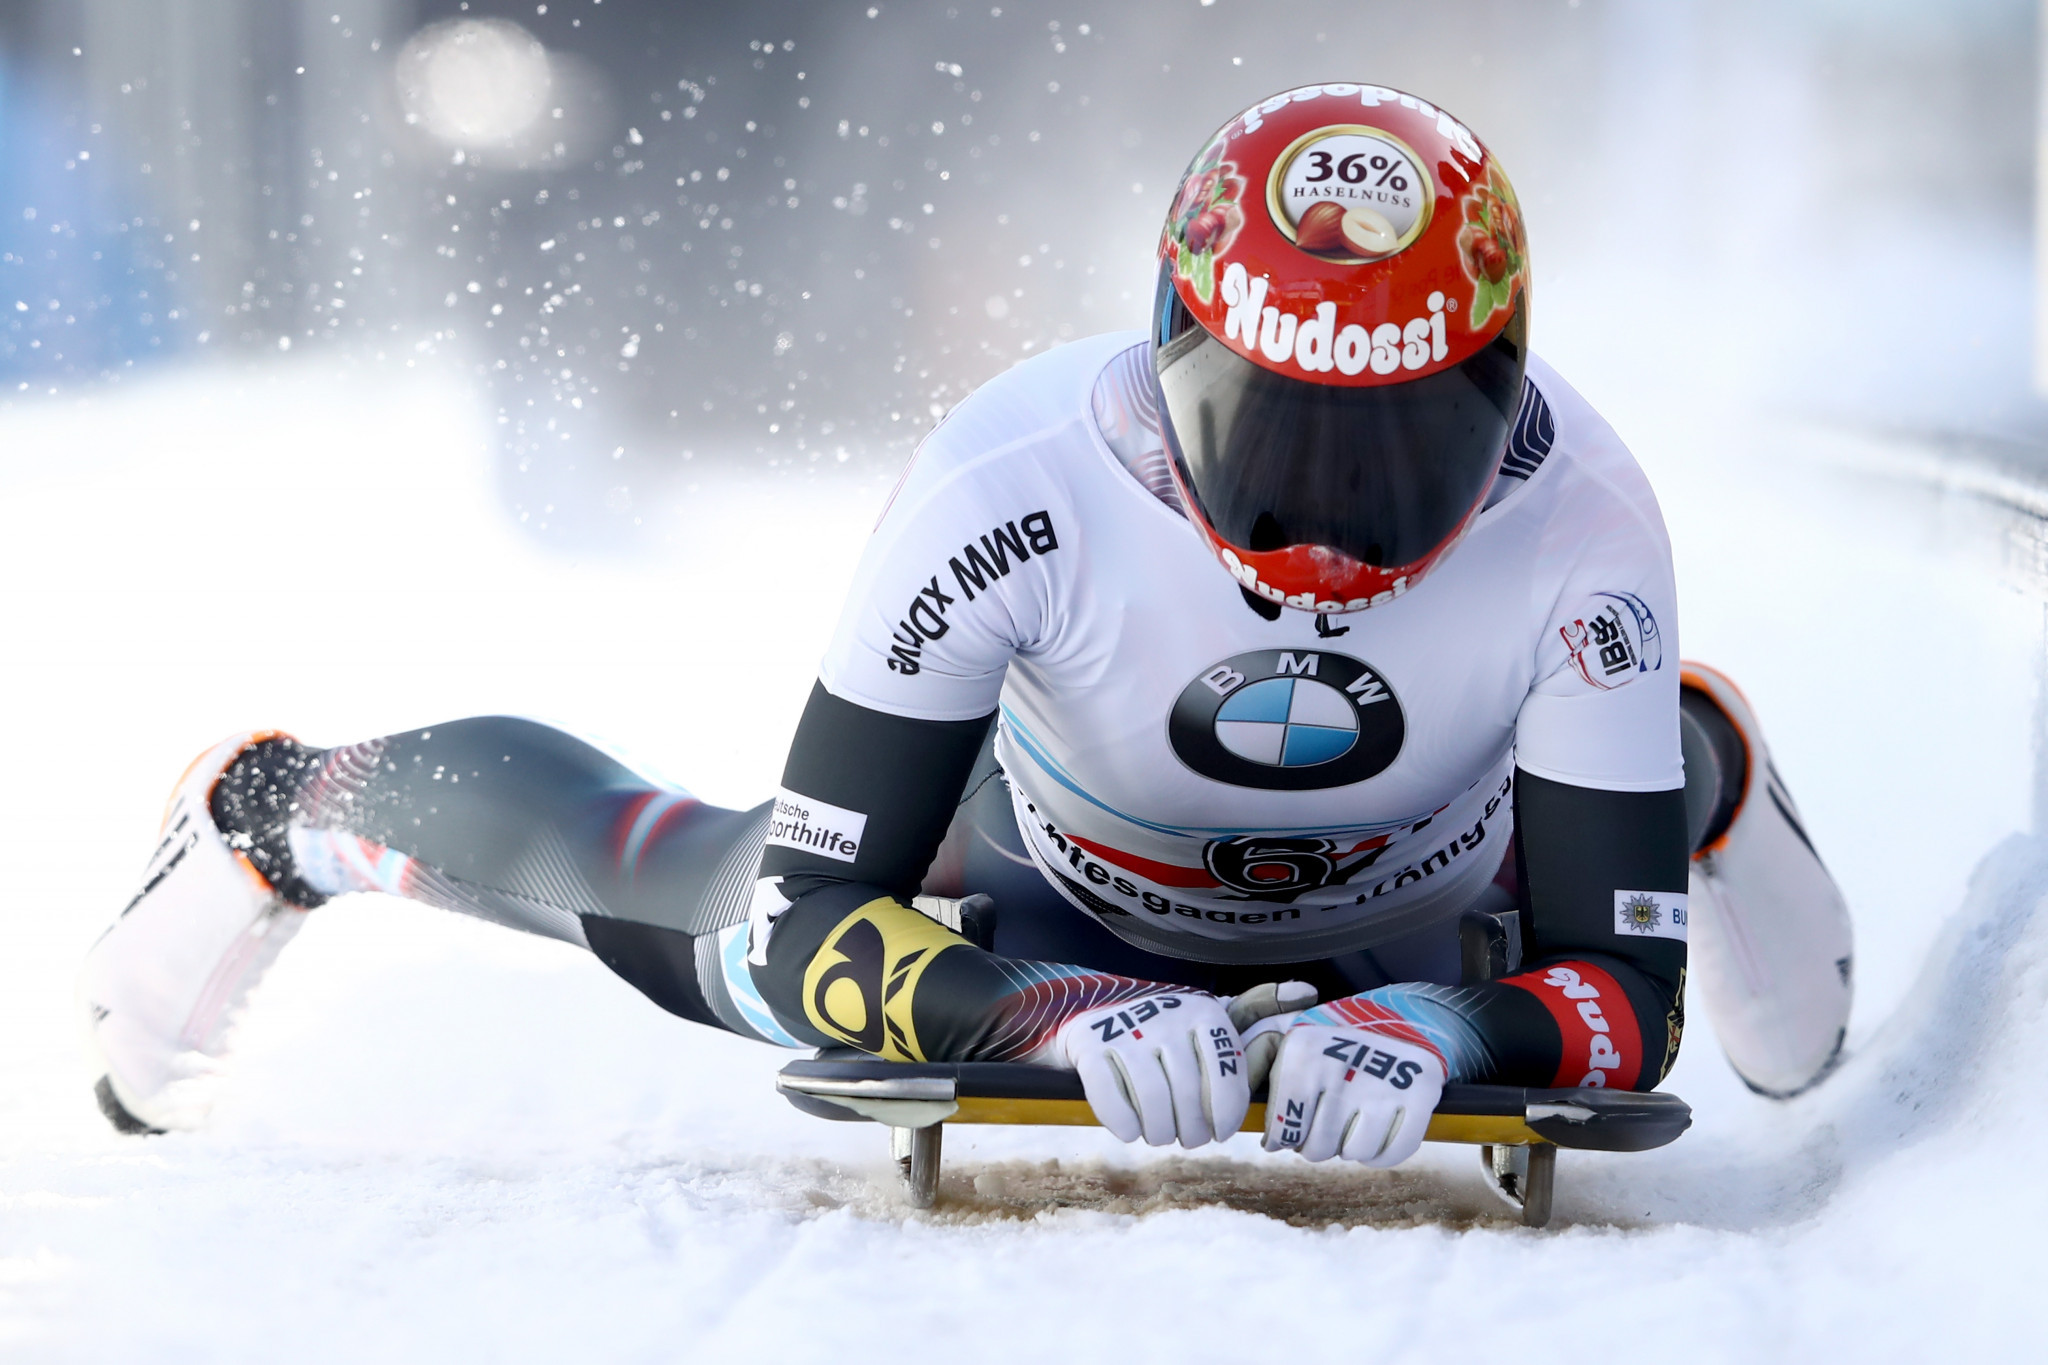 Skeleton world champion Lölling breaks key start time barrier for first time